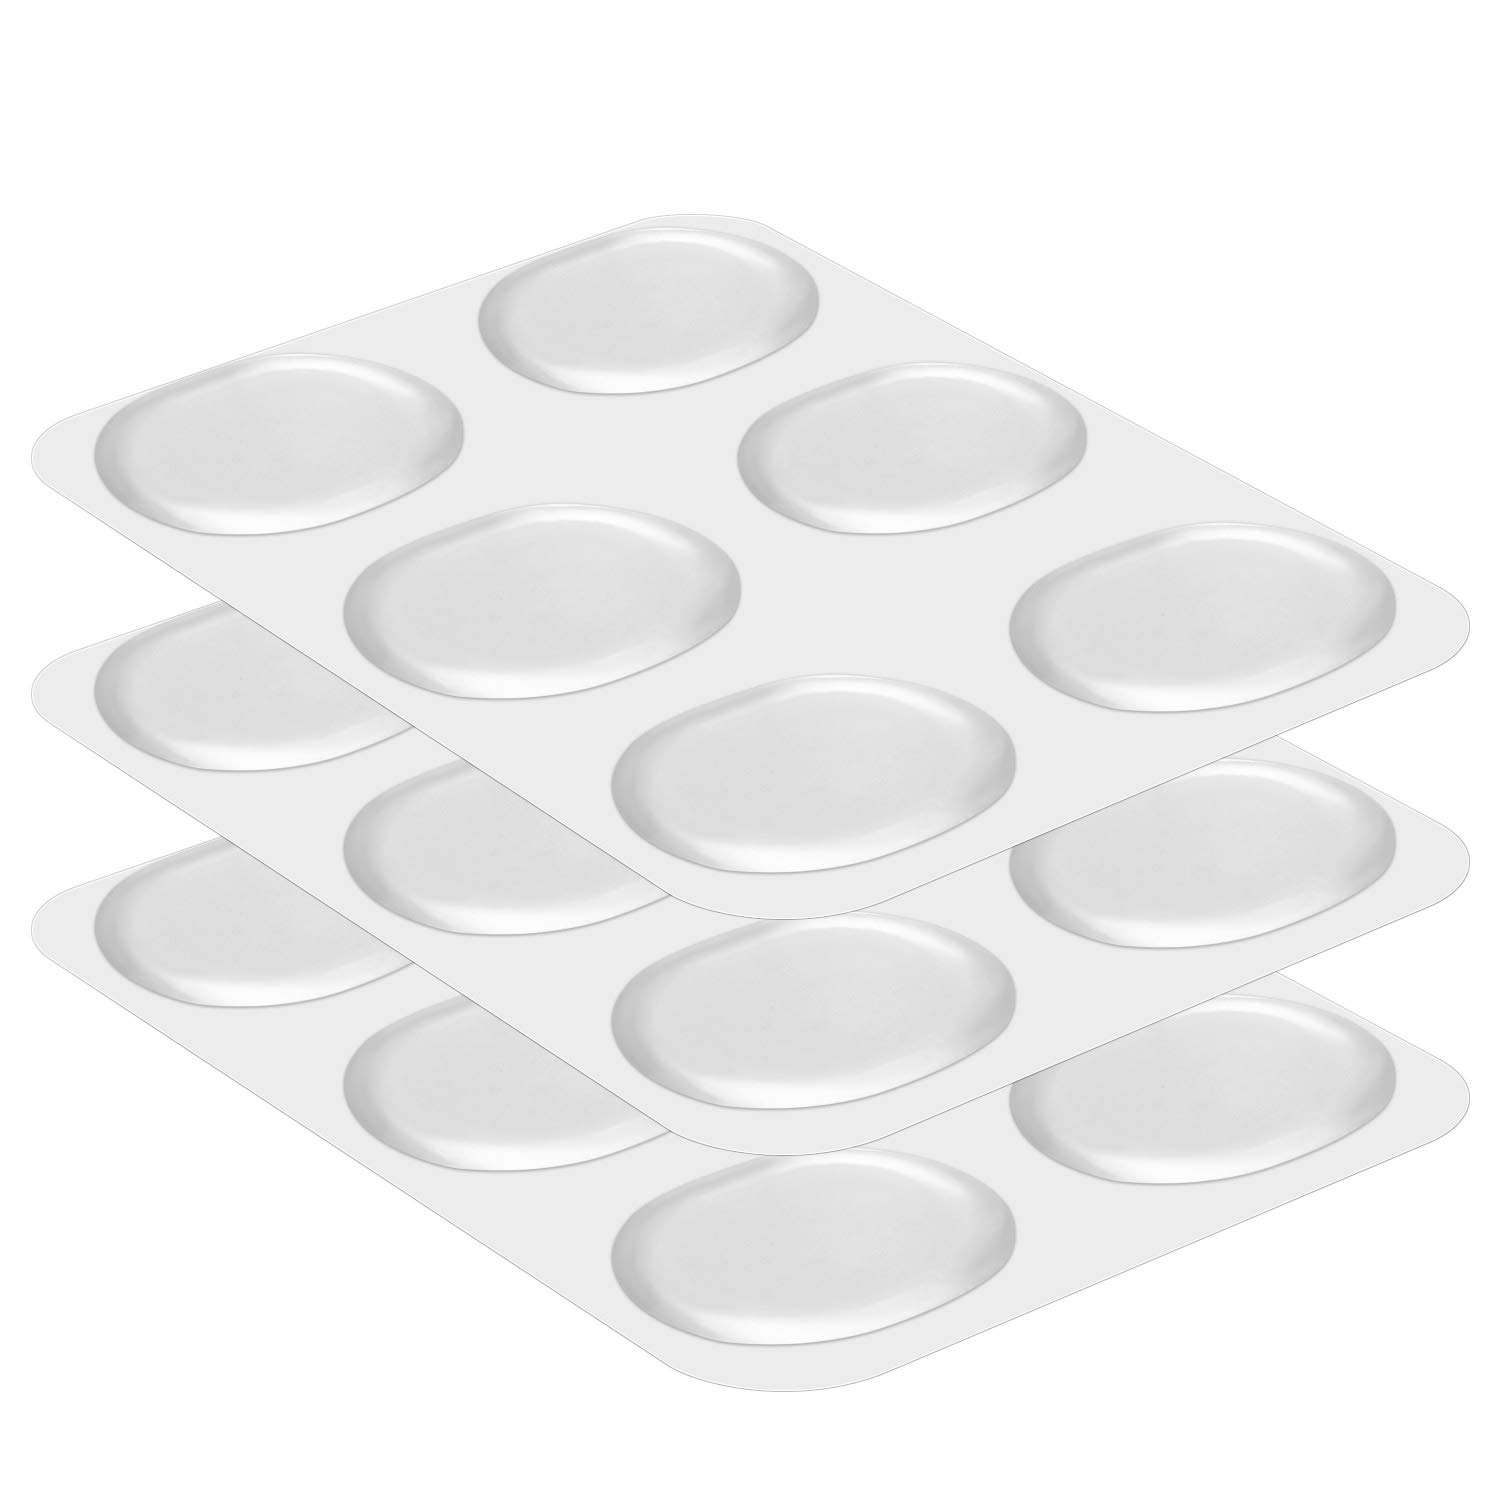 Dreamtop 18 Pieces Drum Damper Gel Pads Silicone Drums Silencer for Drums Tone Control- Clear